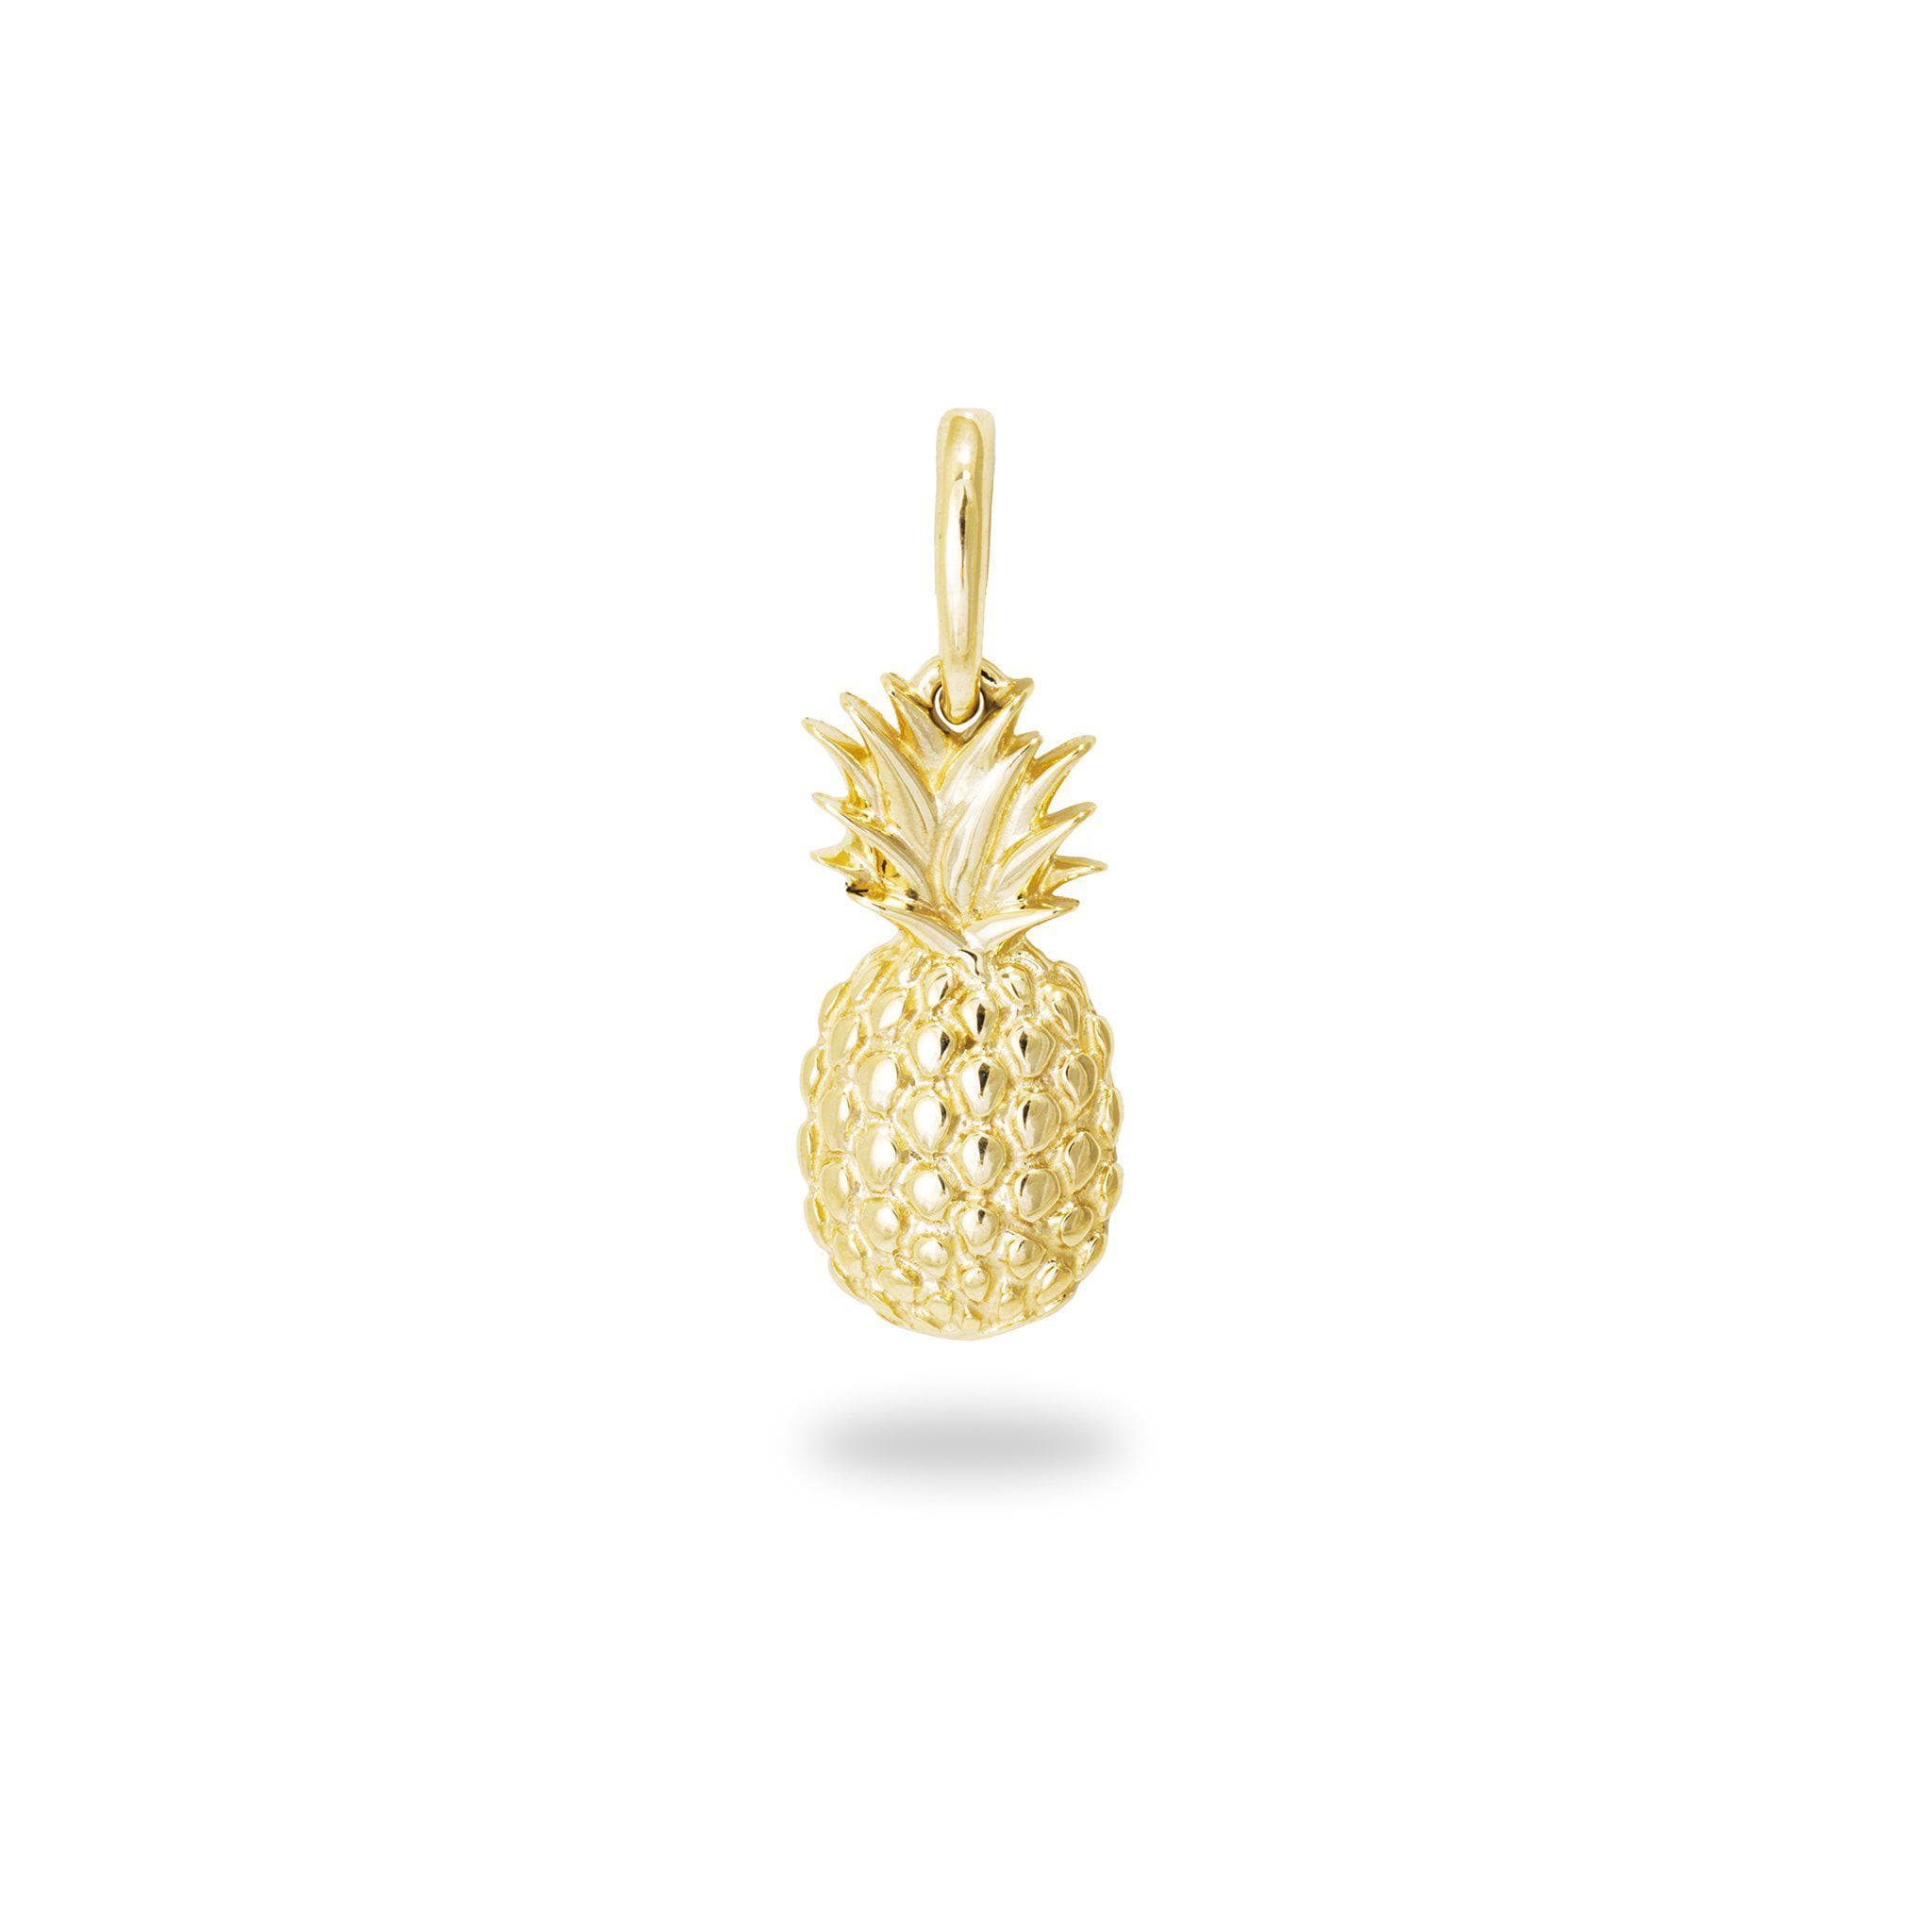 take white crystals jck trending are editorial copy pineapple your pick catherineweitzman pineapples shaker weitzman catherine article print gold with in vermeil necklace